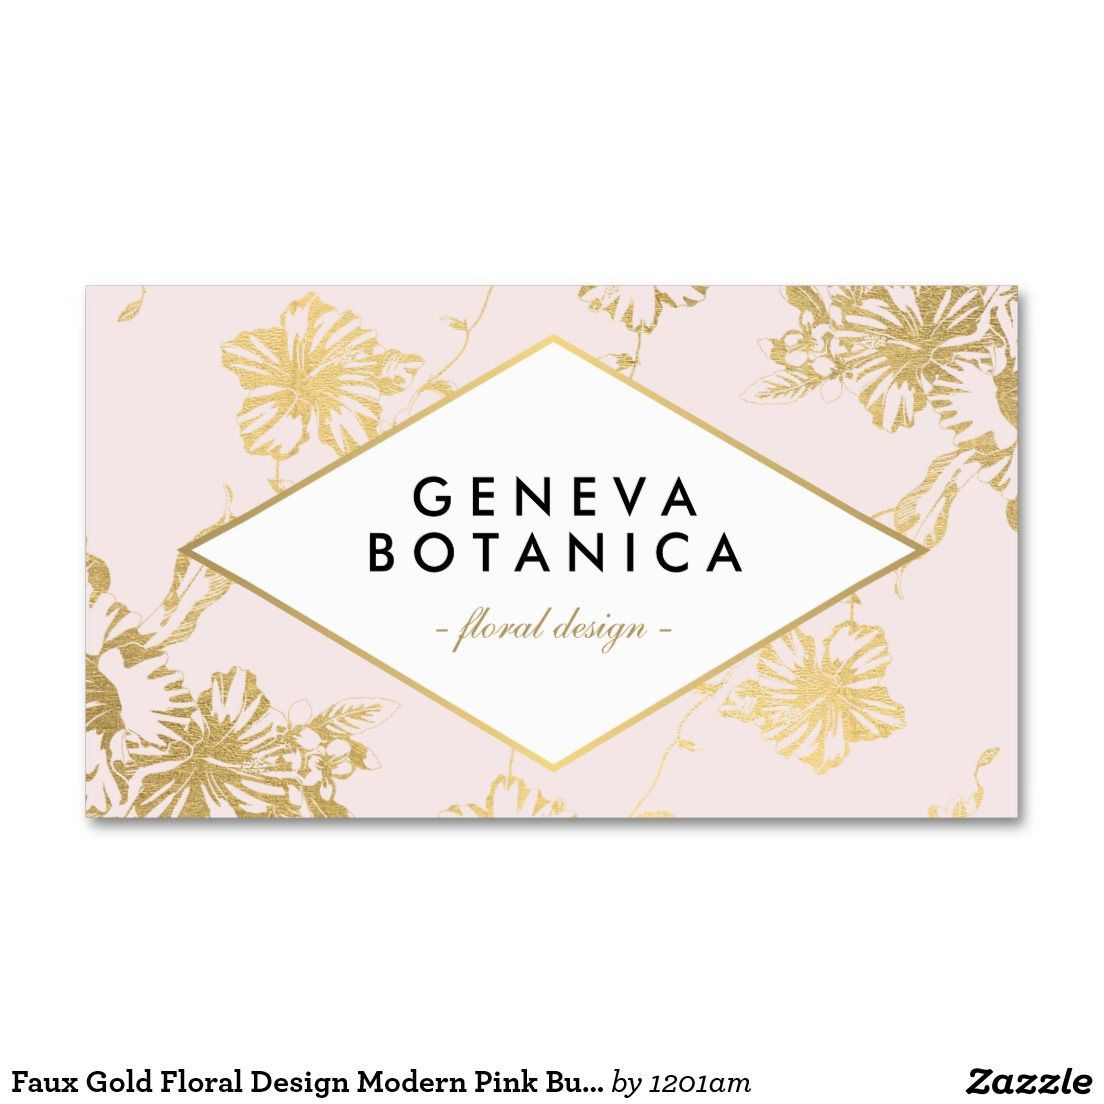 Faux gold floral design modern pink business card for event faux gold floral design modern pink business card for event stylists floral designers wedding magicingreecefo Gallery